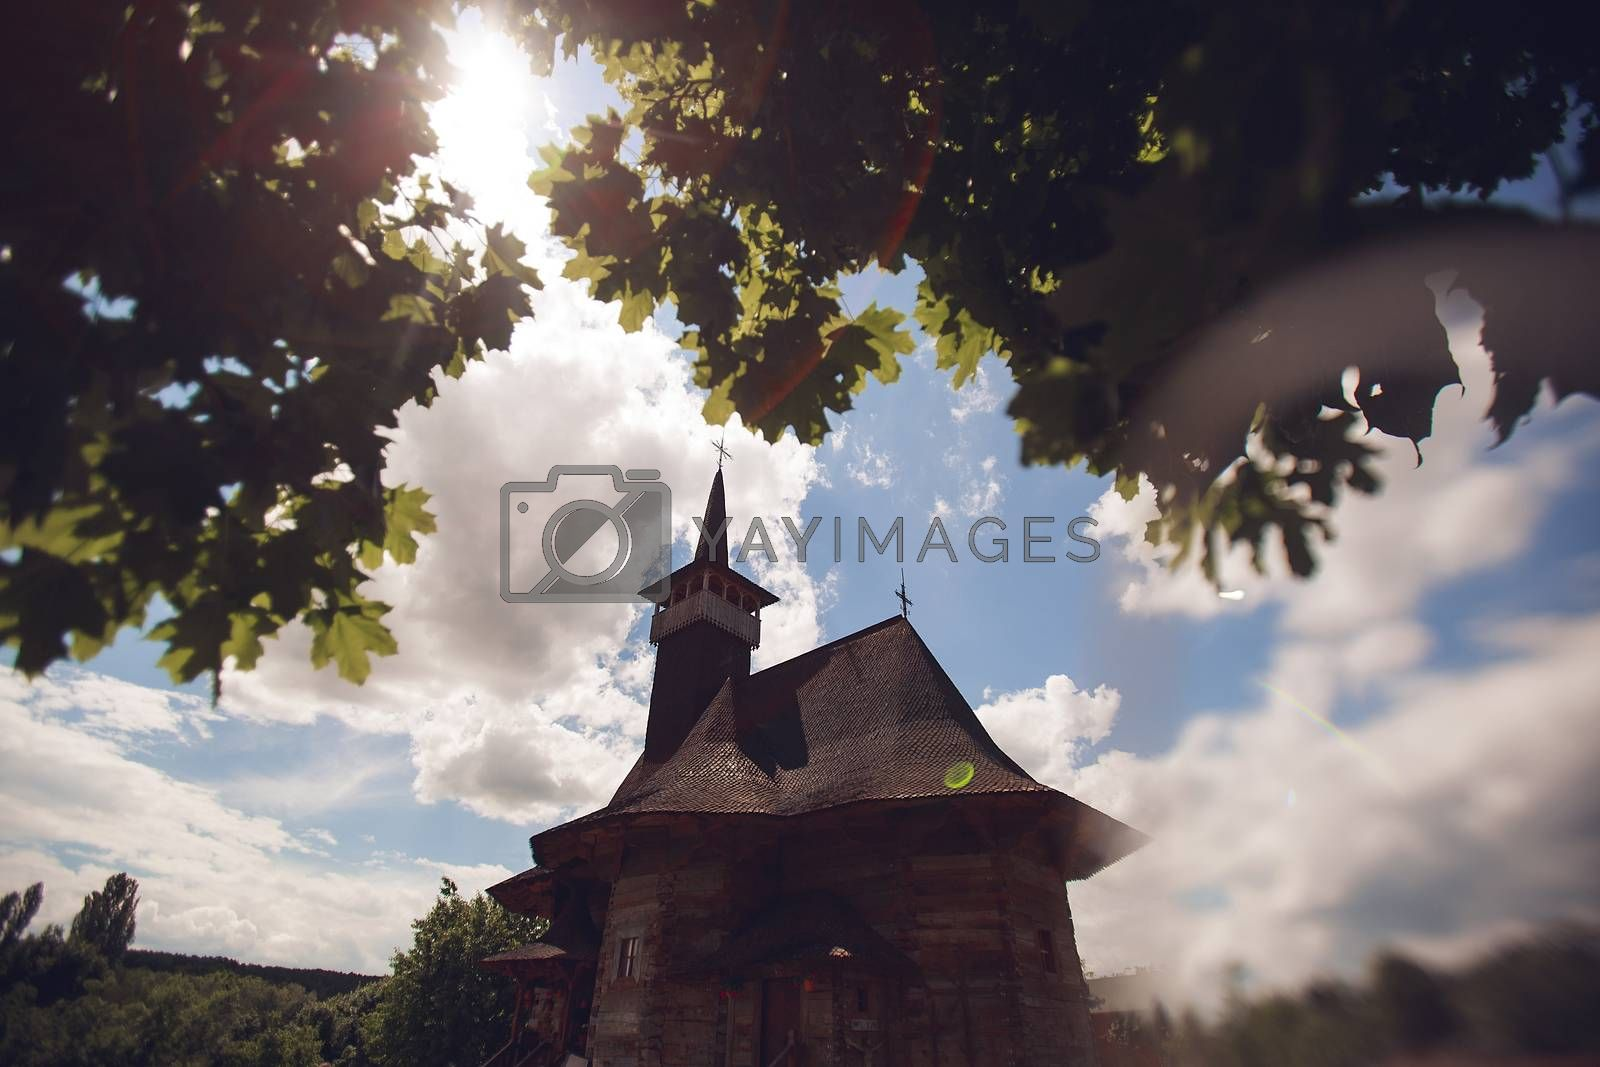 We travel to the wooden church